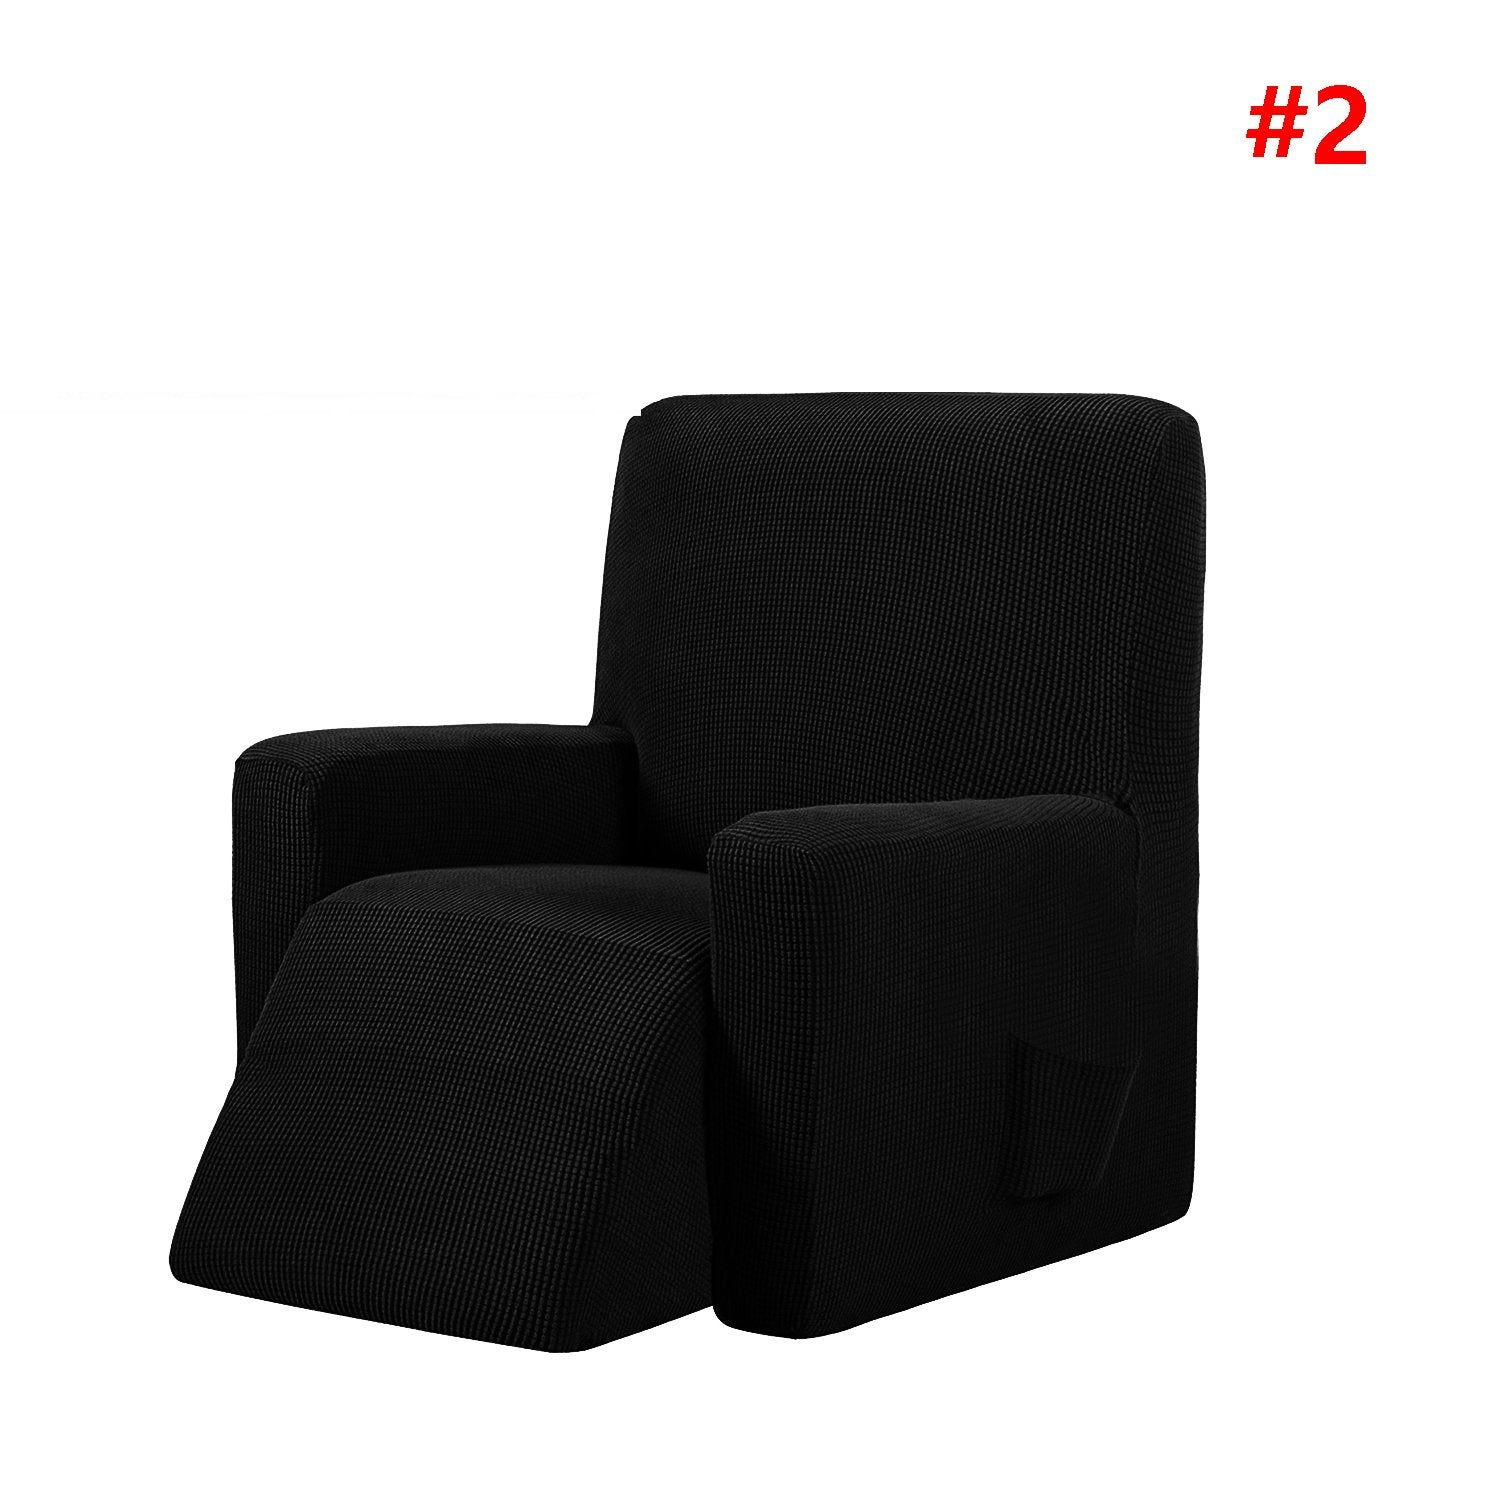 Groovy Free Postage Decorative Stretch Sofa Cover For Recliner Chairs Pdpeps Interior Chair Design Pdpepsorg